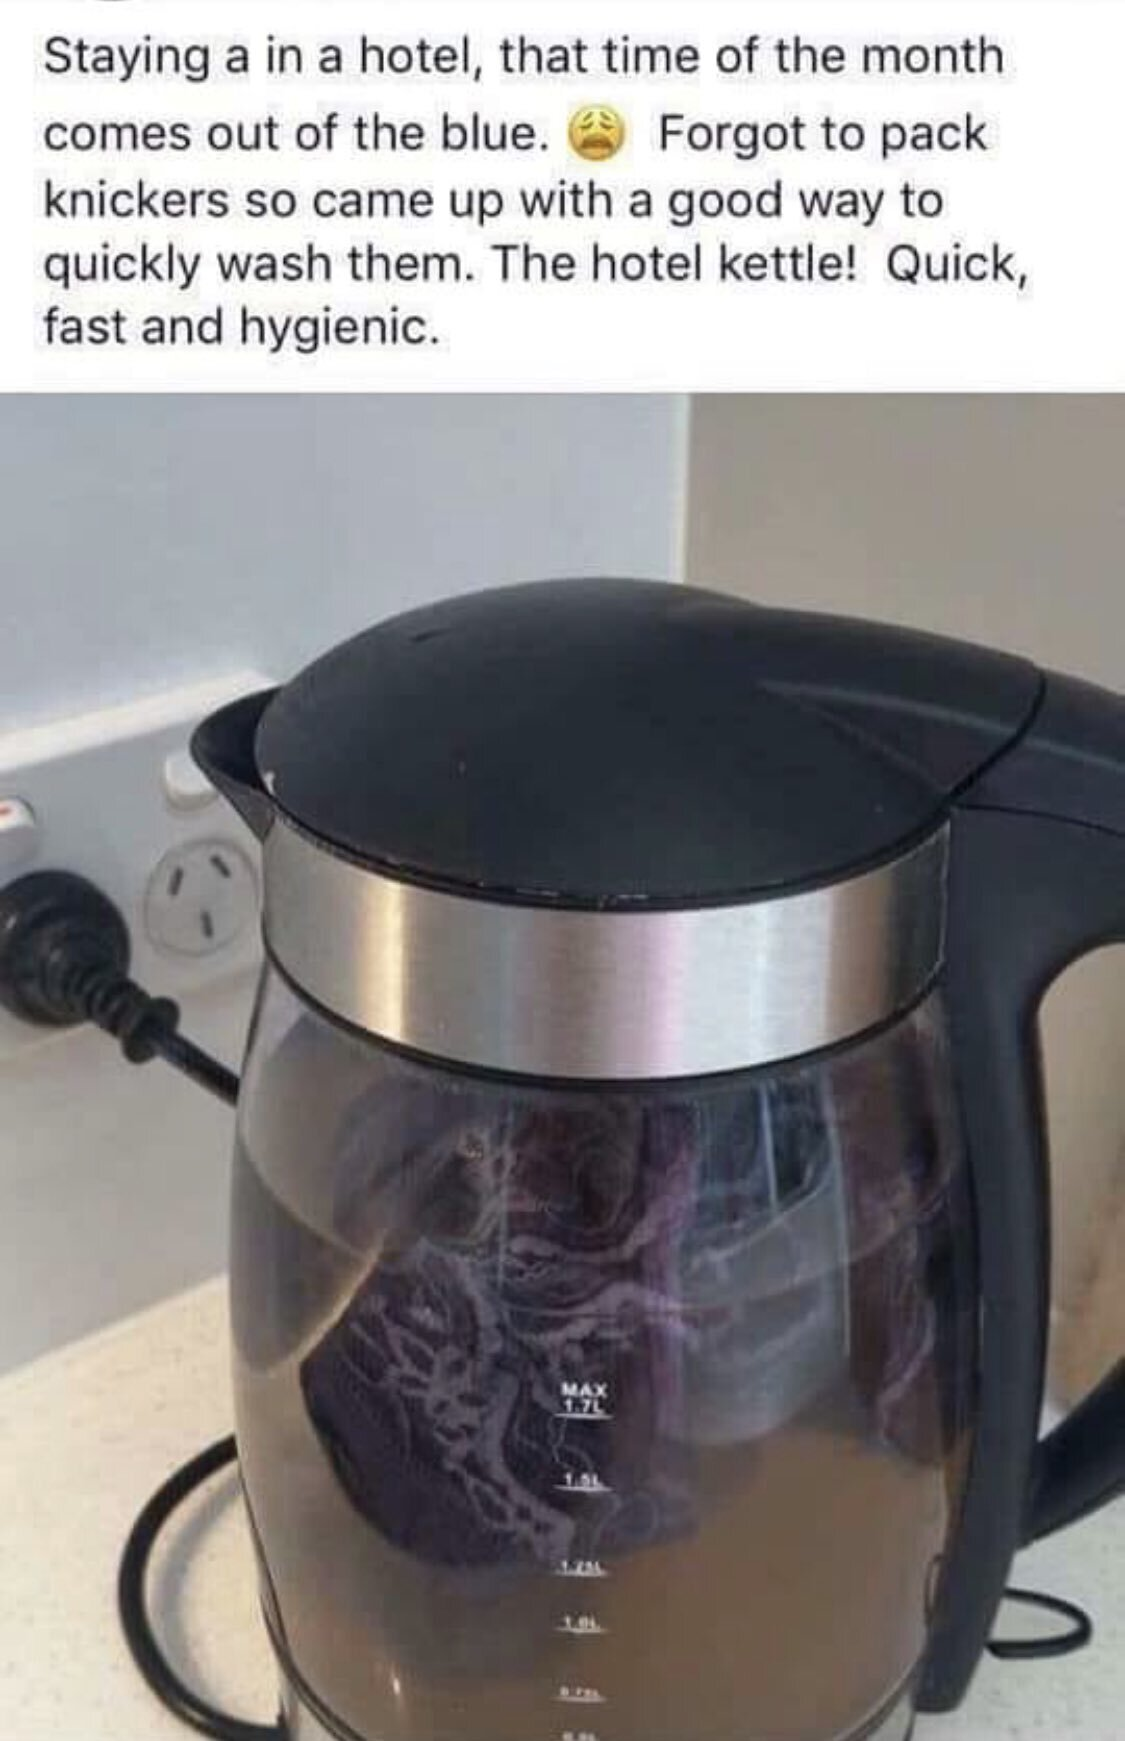 Pants in kettle after period